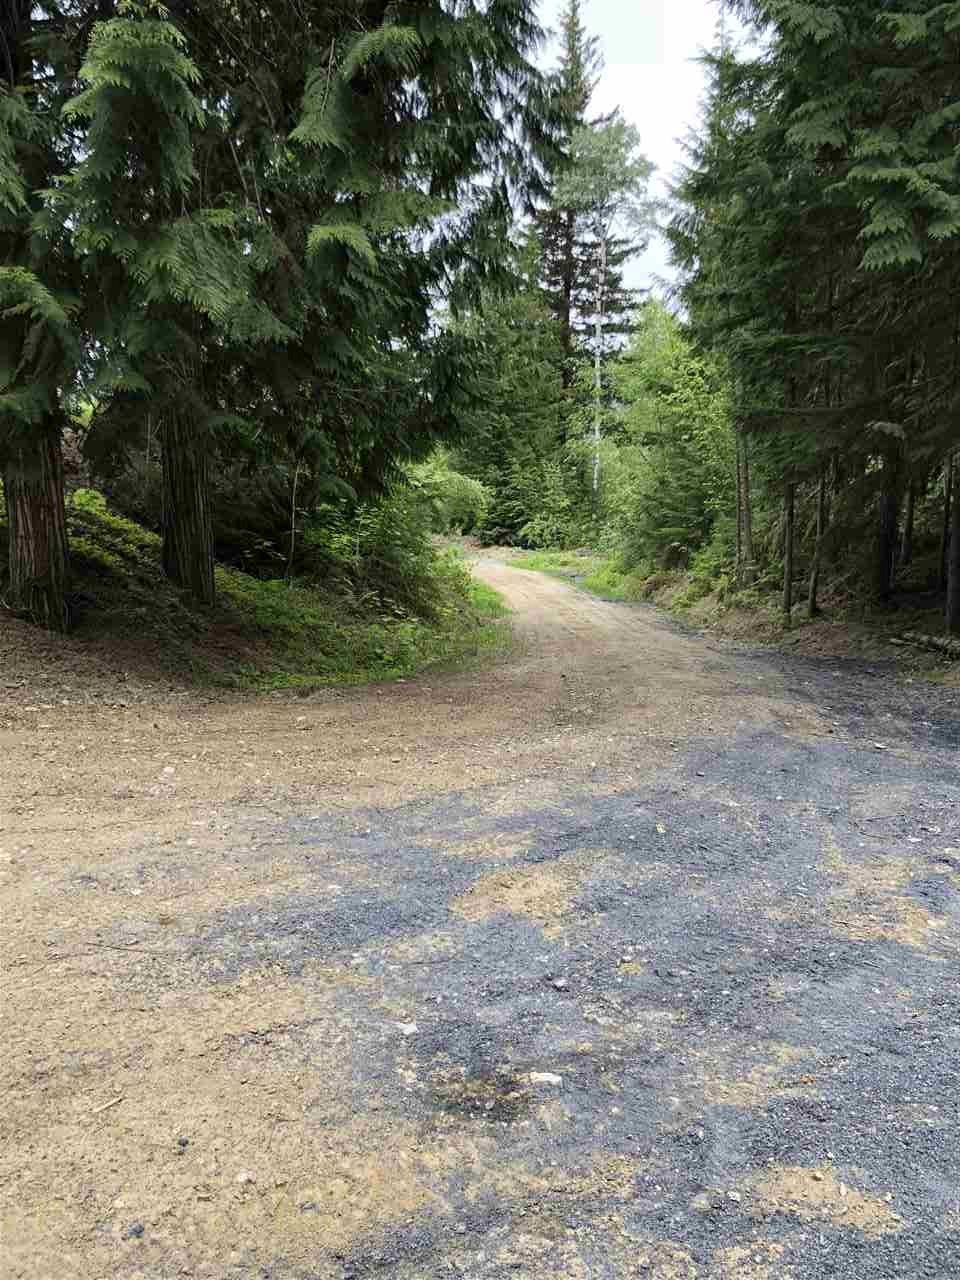 Photo 12: Photos: 5660 MARSHALL CREEK Road: Horsefly House for sale (Williams Lake (Zone 27))  : MLS®# R2277044